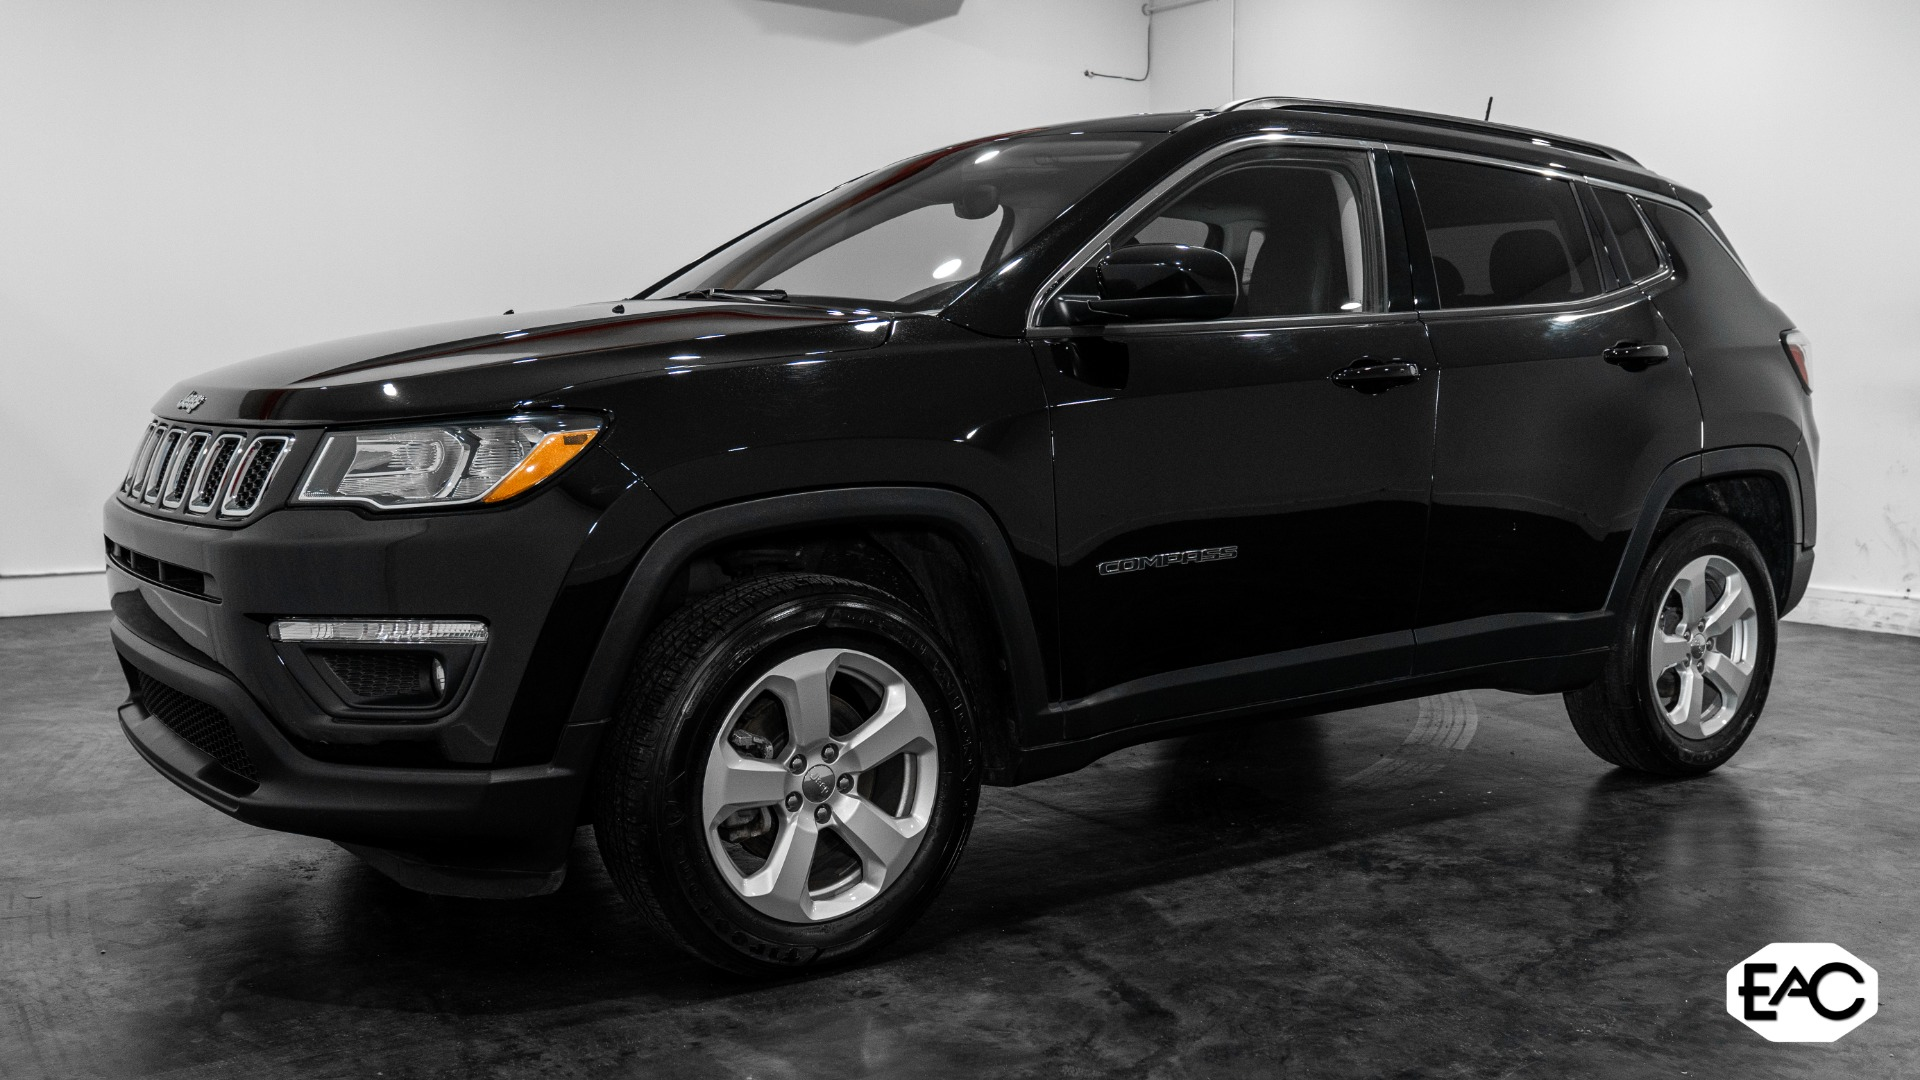 Used 2018 Jeep Compass Latitude for sale $16,490 at Empire Auto Collection in Warren MI 48091 1